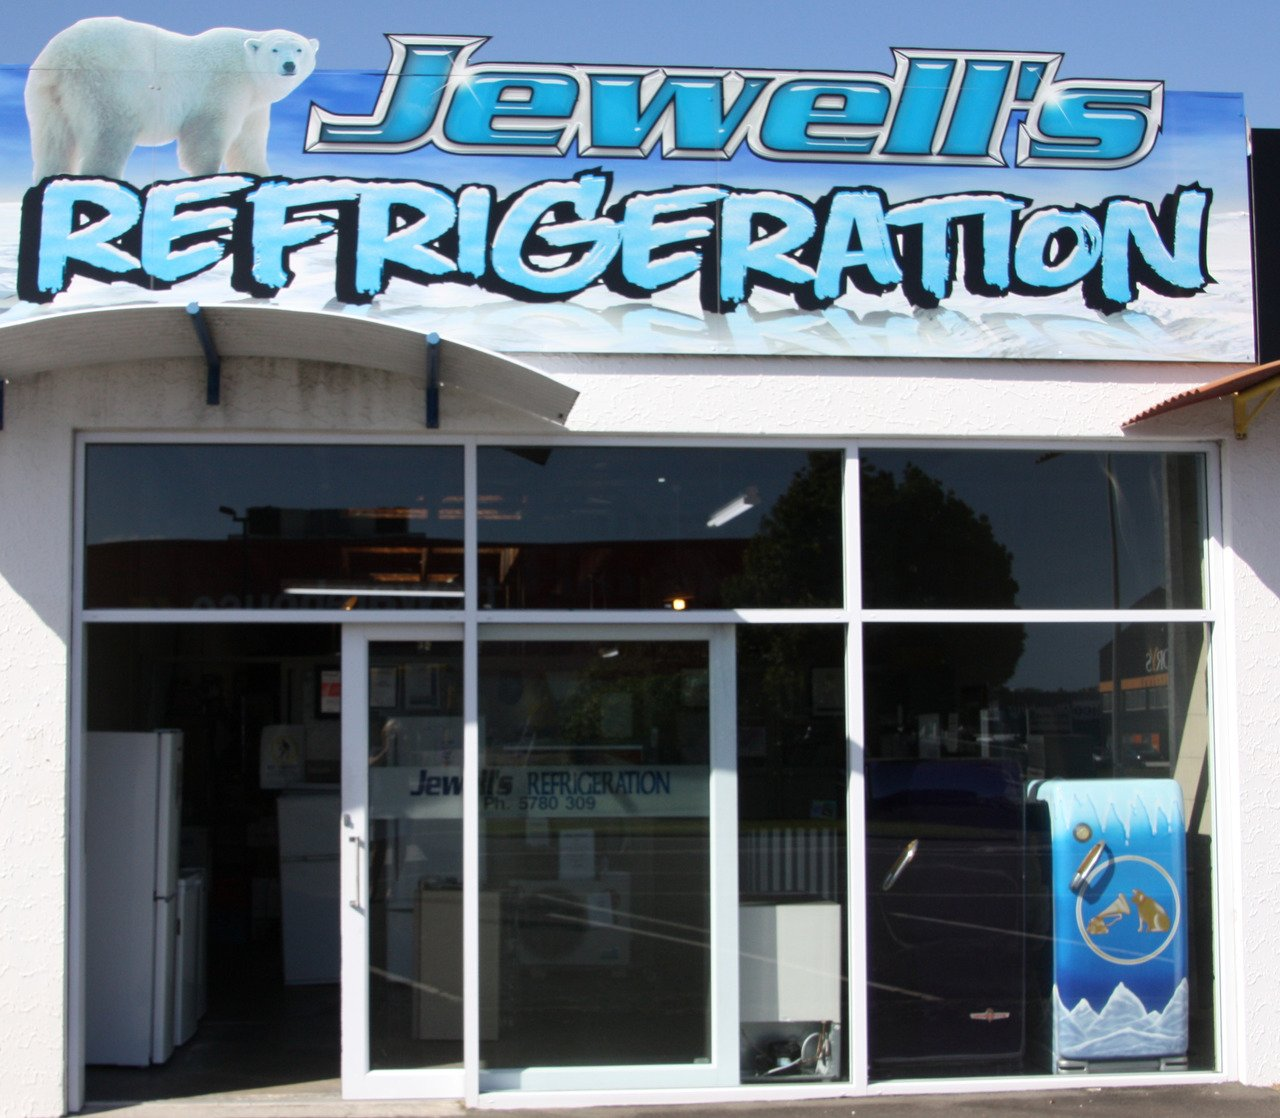 Professional refrigeration service